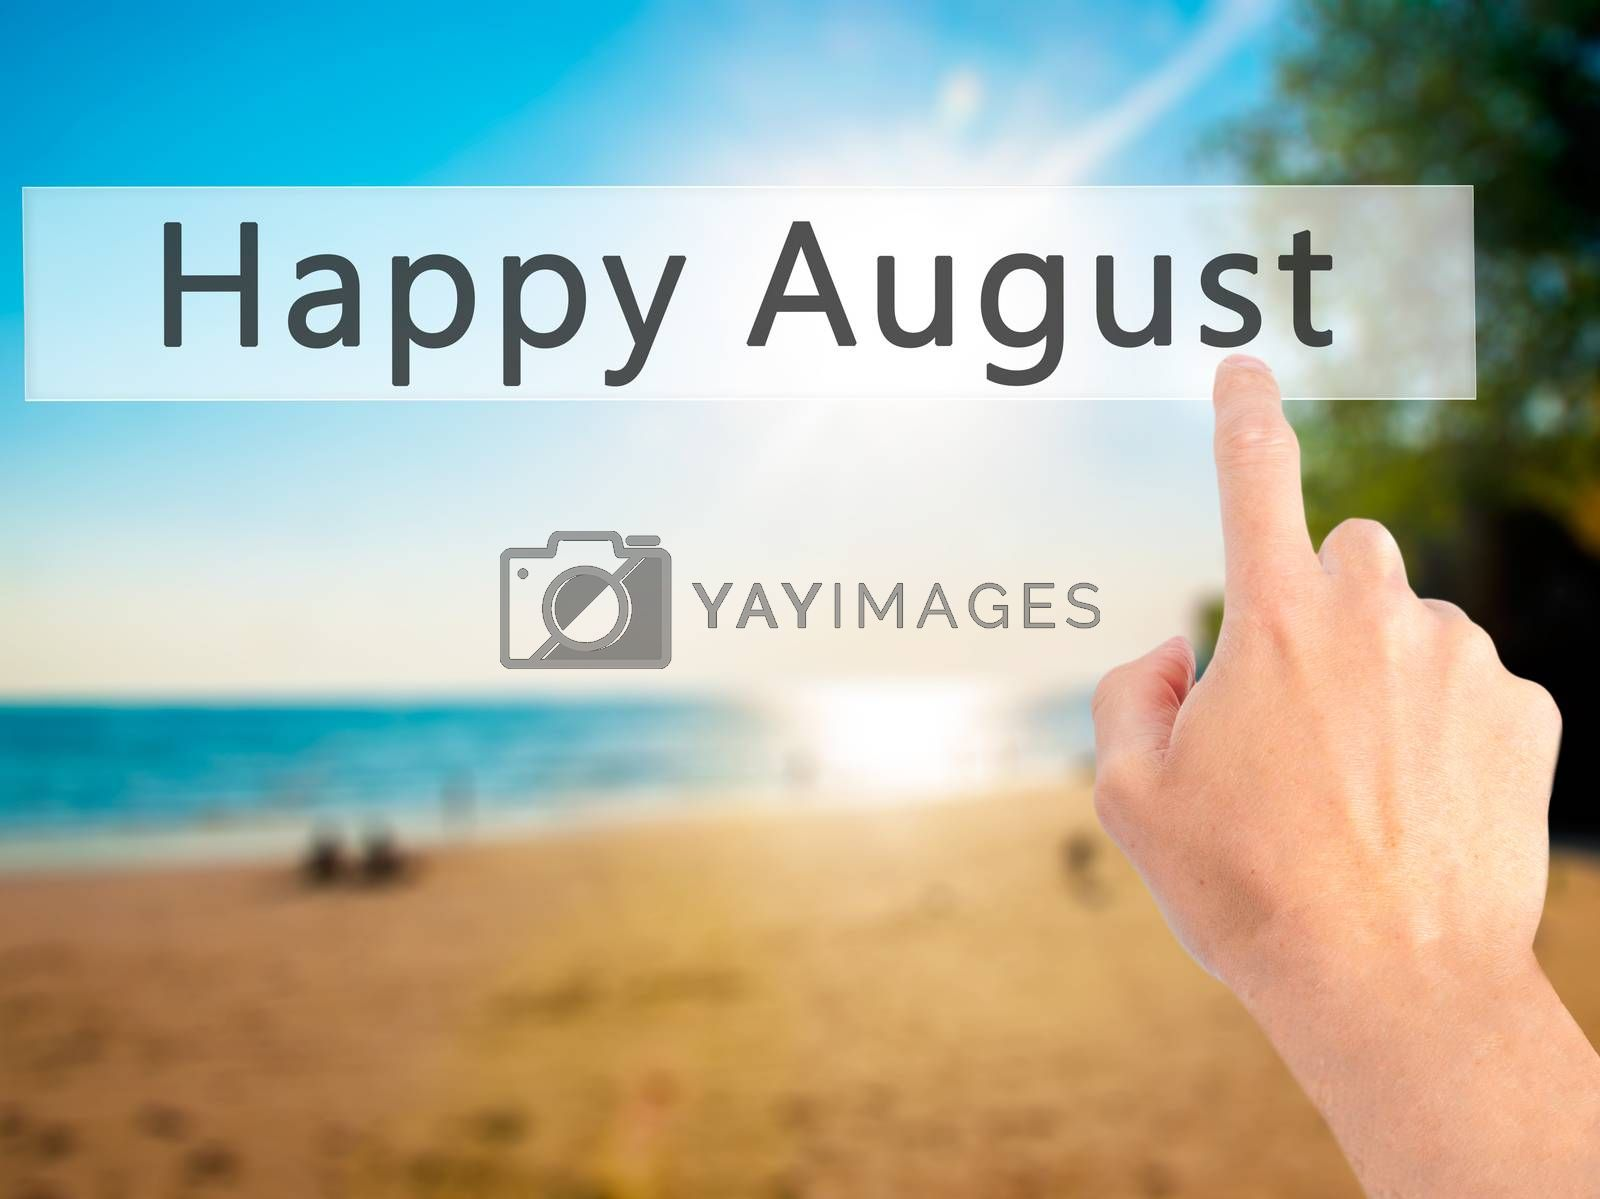 Happy August - Hand pressing a button on blurred background conc by netsay.net